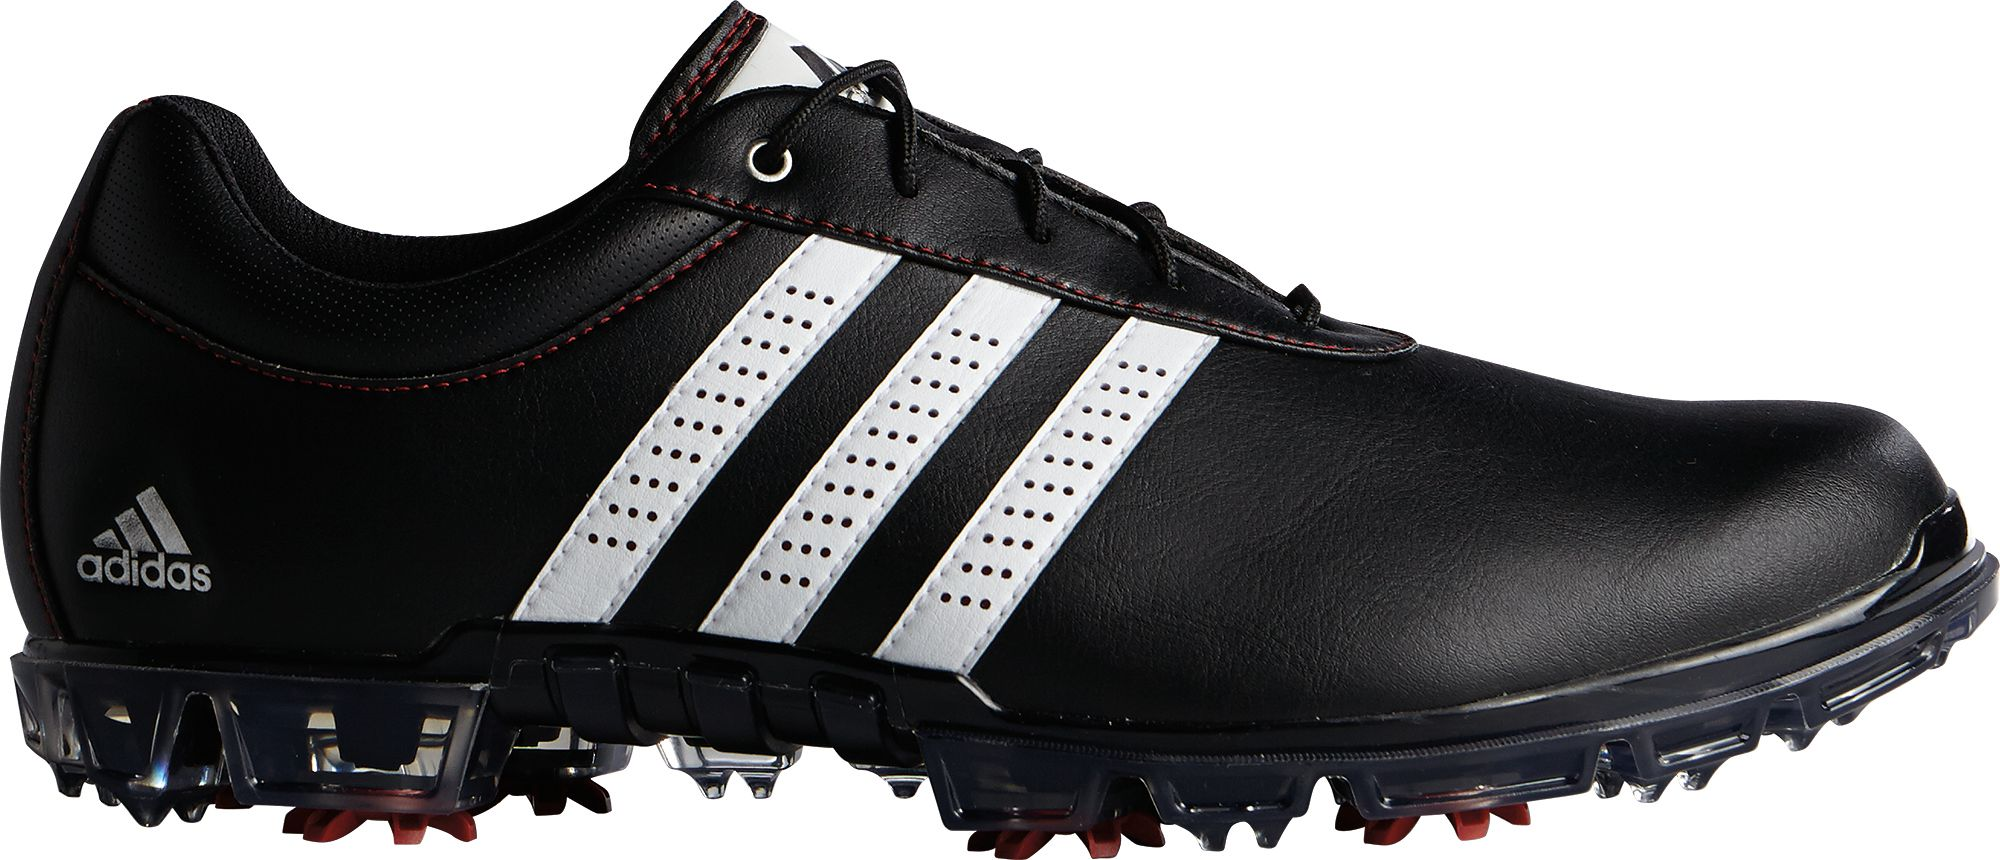 adidas adipure golf shoes discount